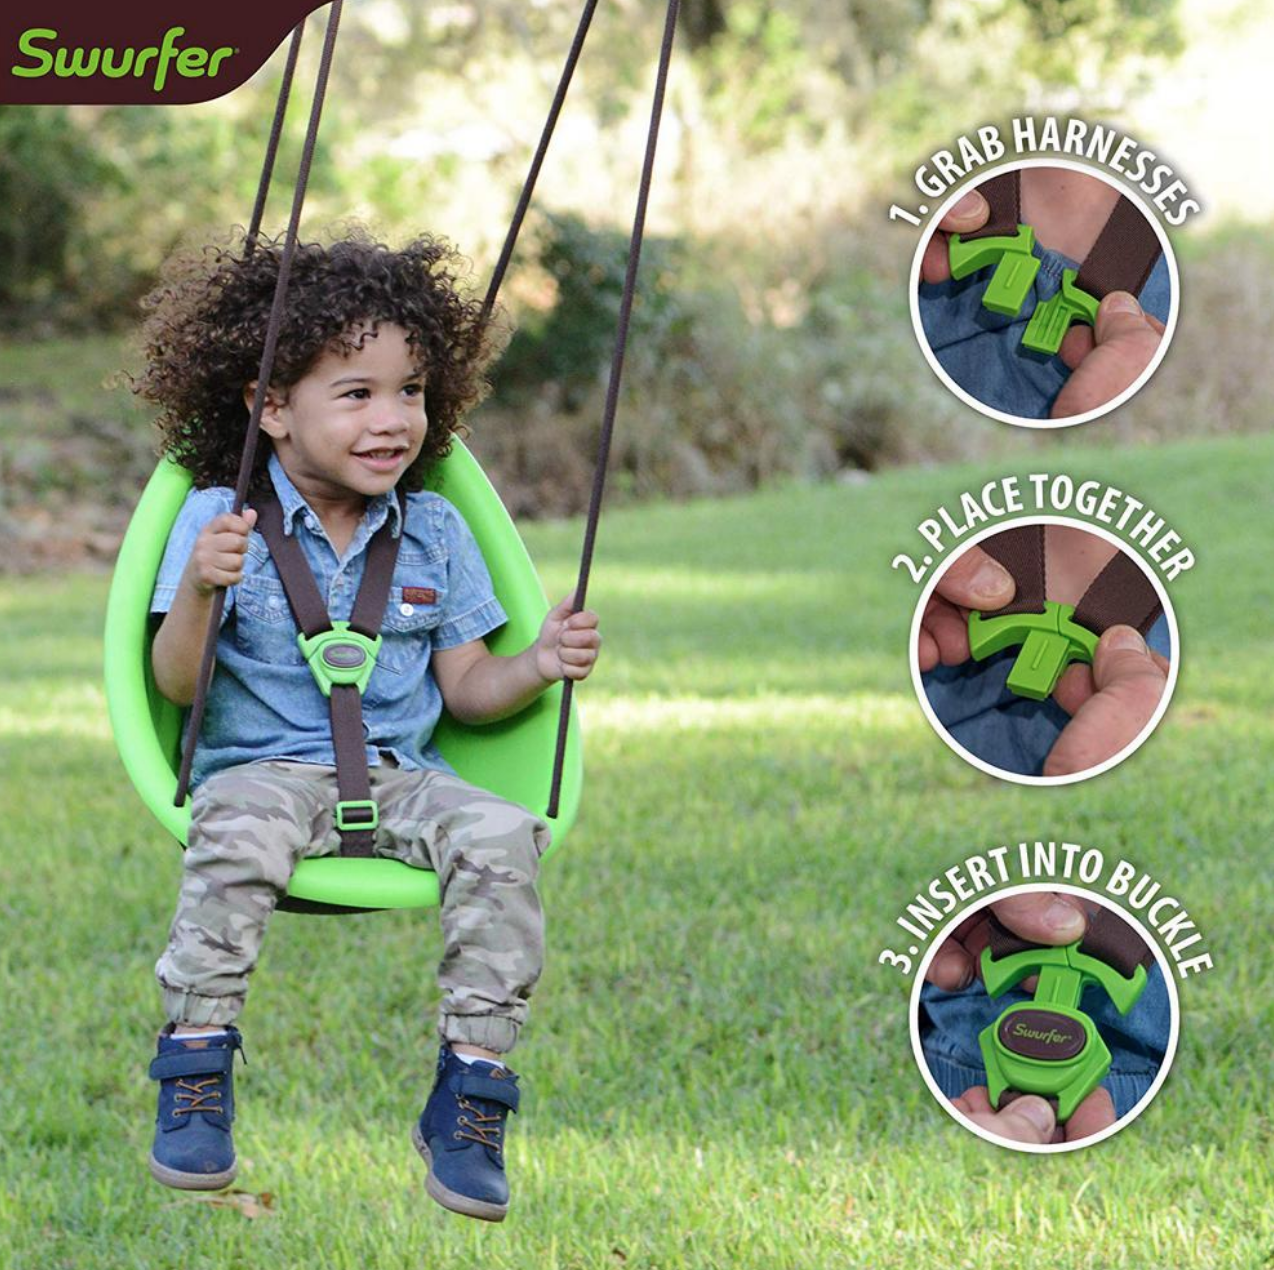 Swurfer Kiwi Toddler Swing